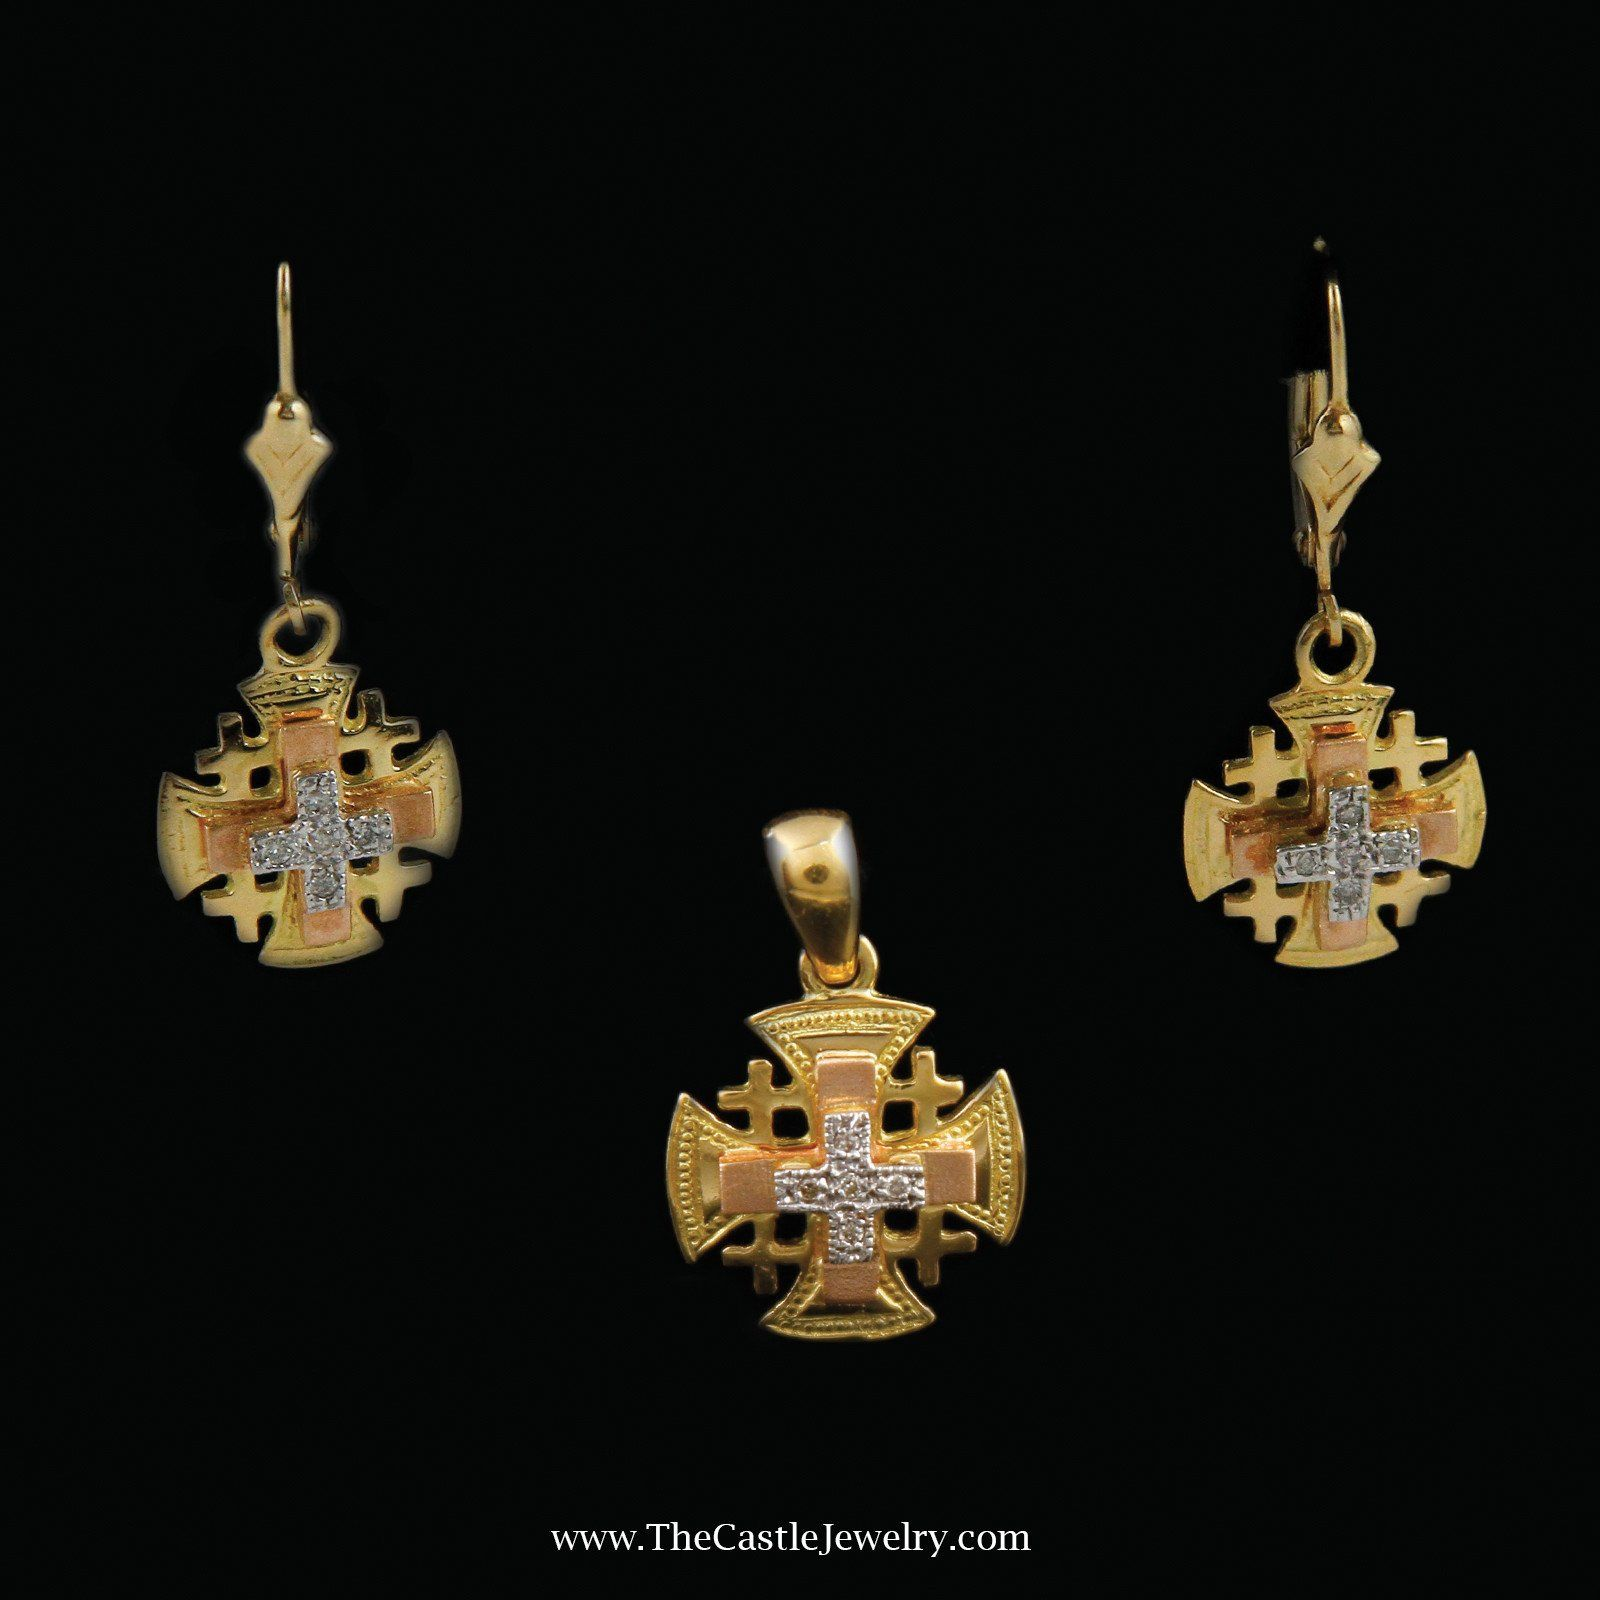 Medieval Style Cross Crest Pendant and Earring Combo in 18K Gold